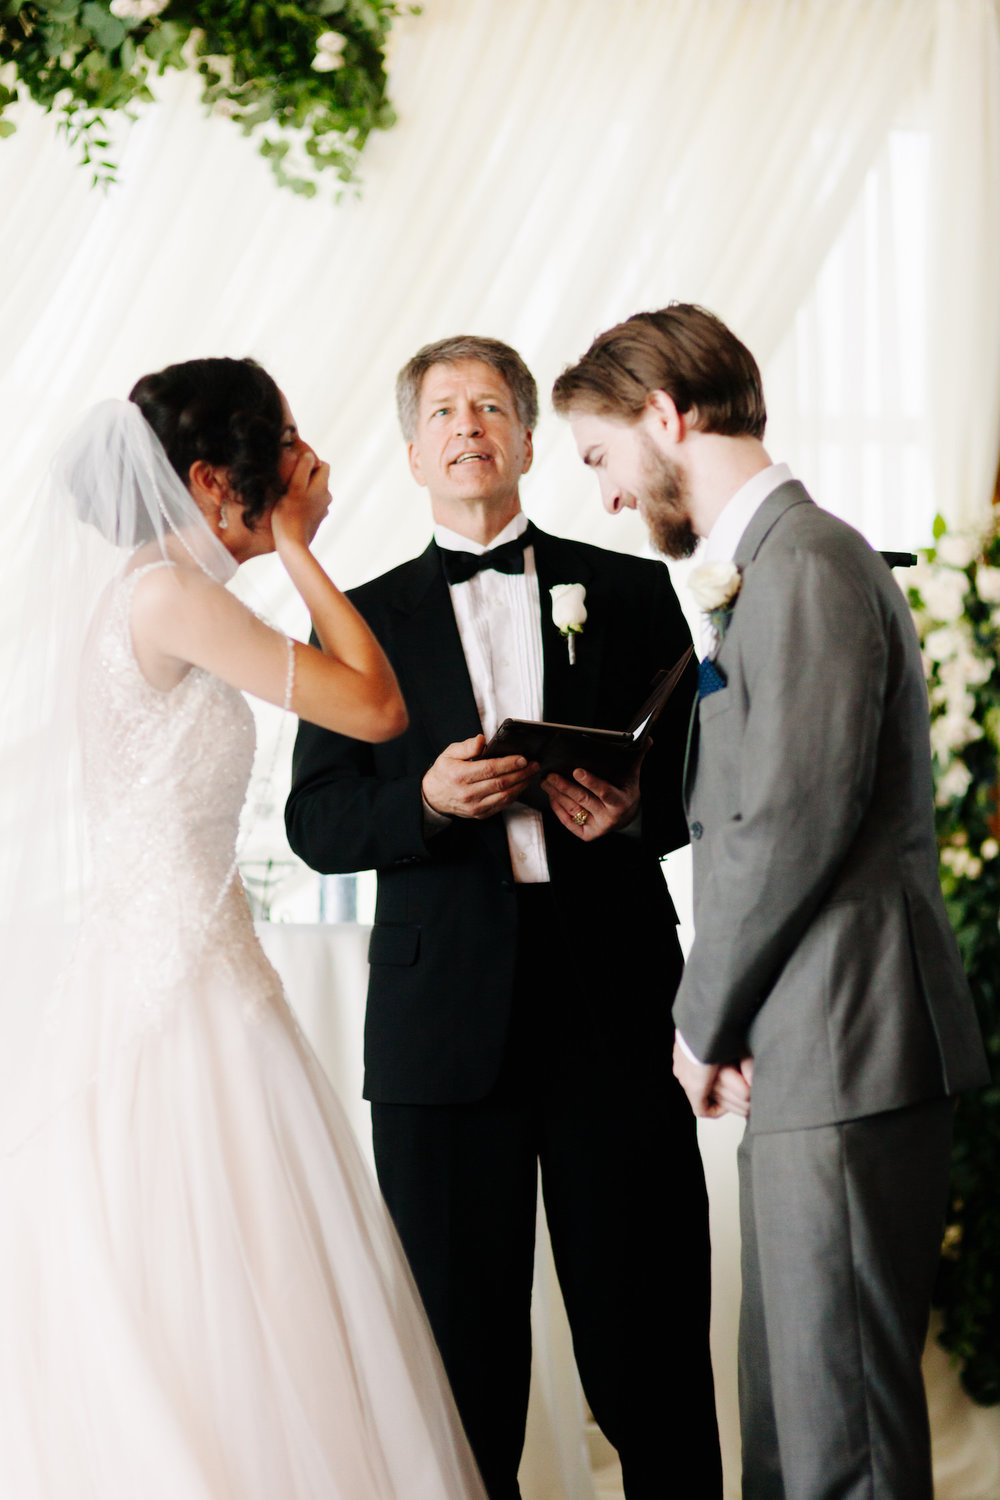 Jared _ Melissa - Ceremony - Jake _ Katie Photography_129.jpg